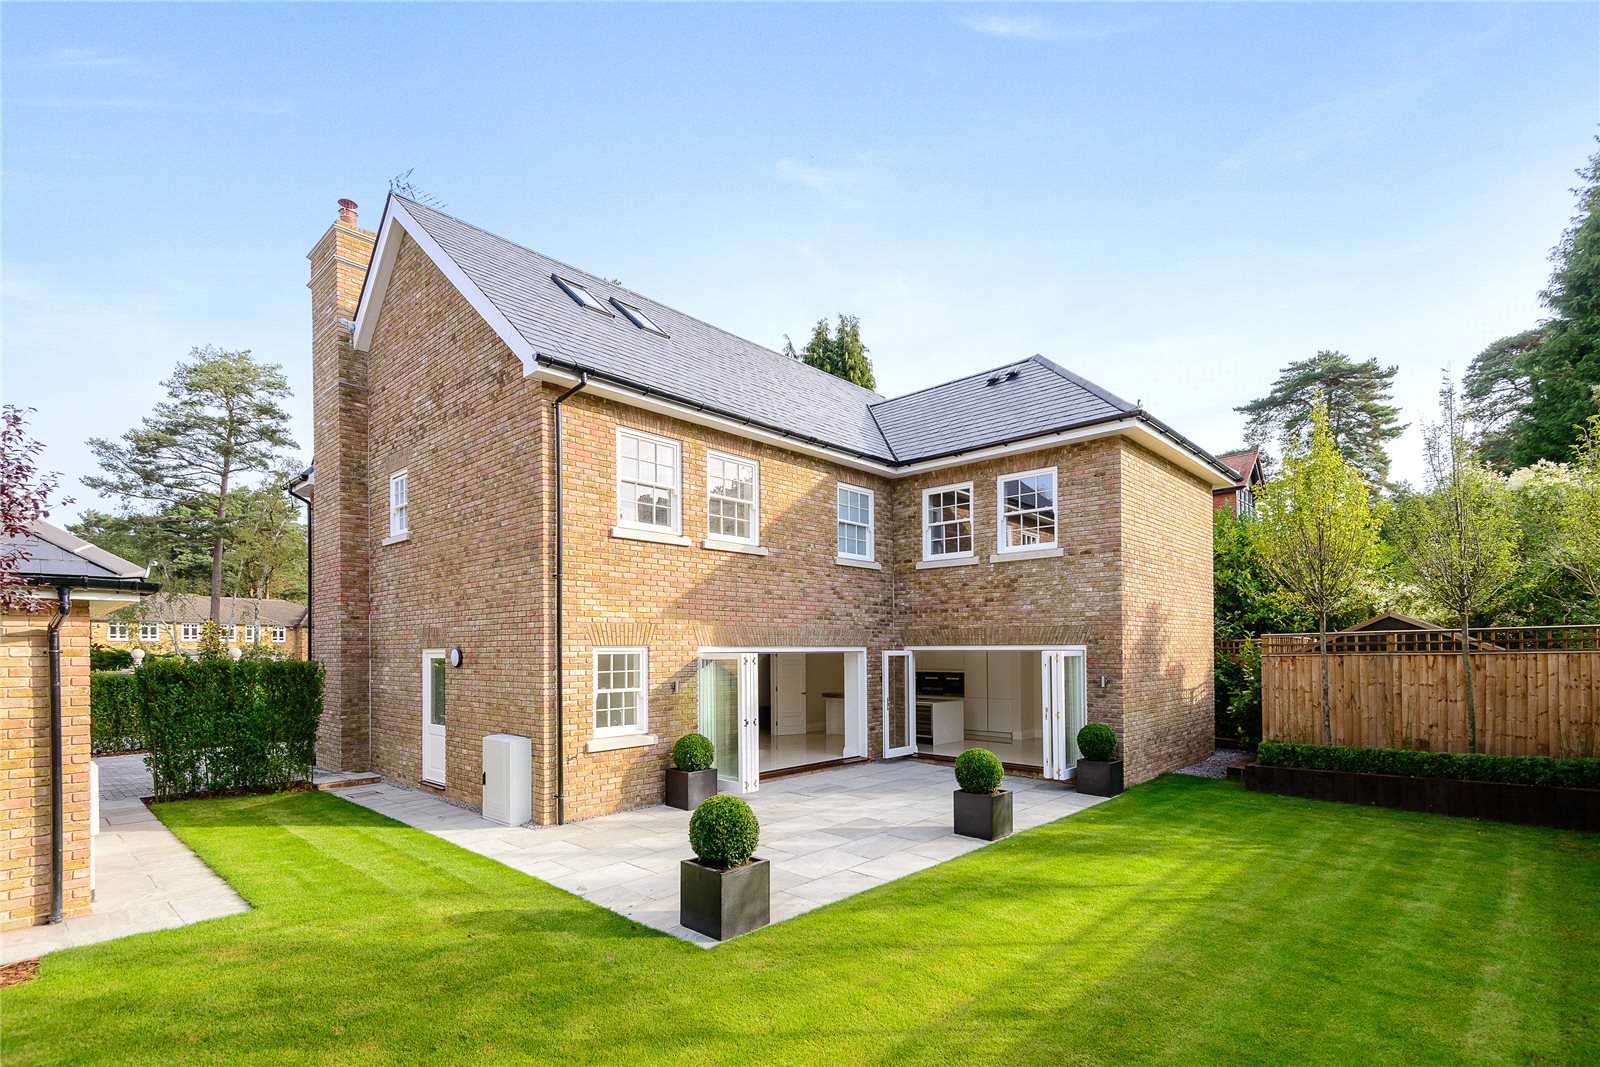 Additional photo for property listing at Whynstones Road, Ascot, Berkshire, SL5 Ascot, 英格蘭